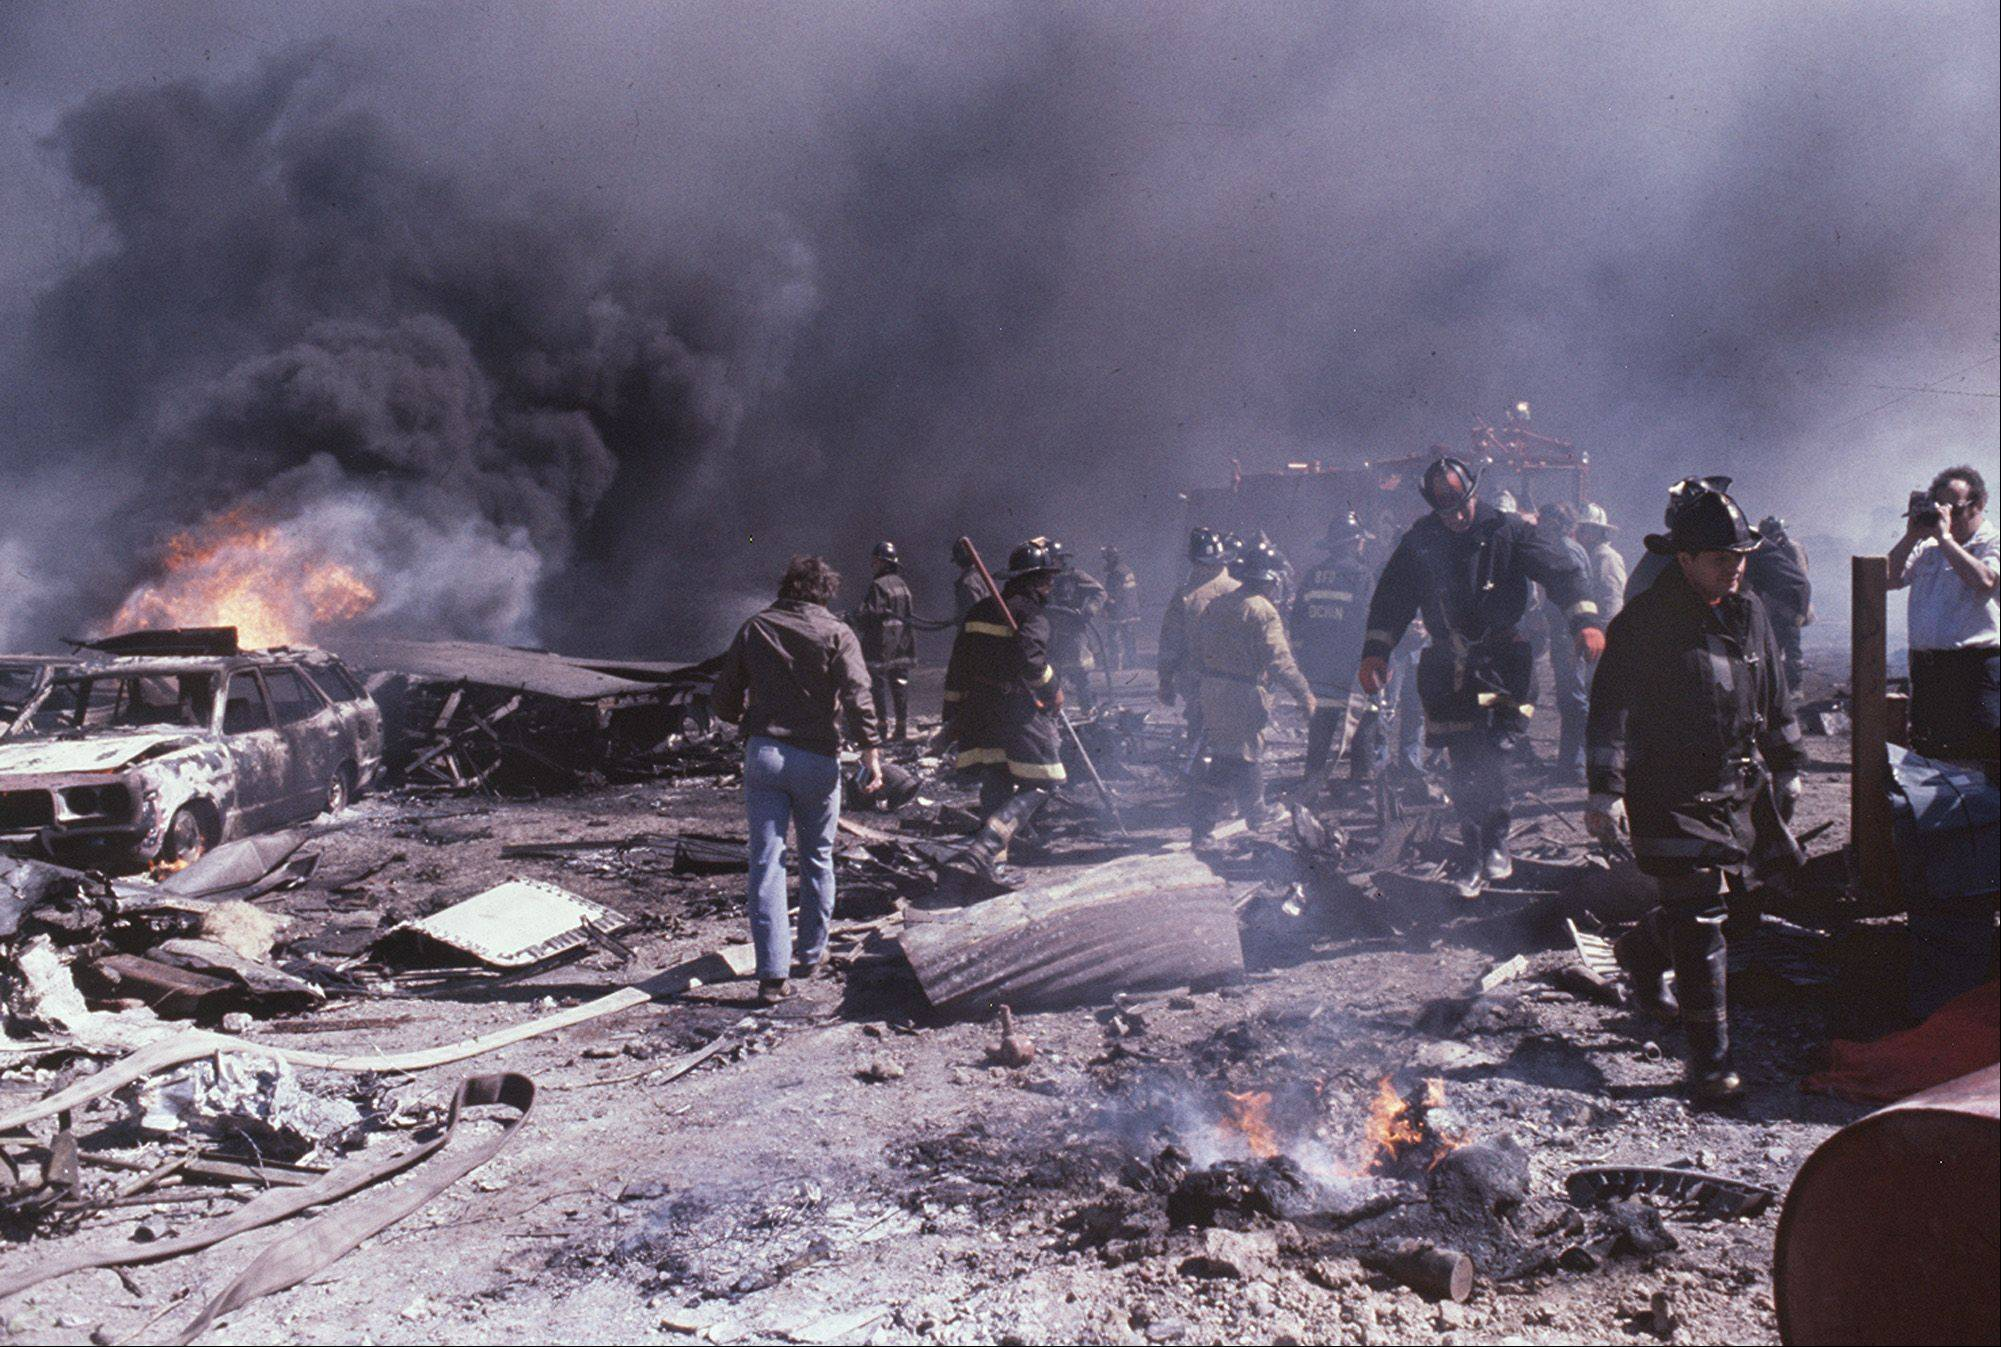 Philip Corboy was the lead lawyer representing families of the victims of American Airlines Flight 191 on May 25, 1979.